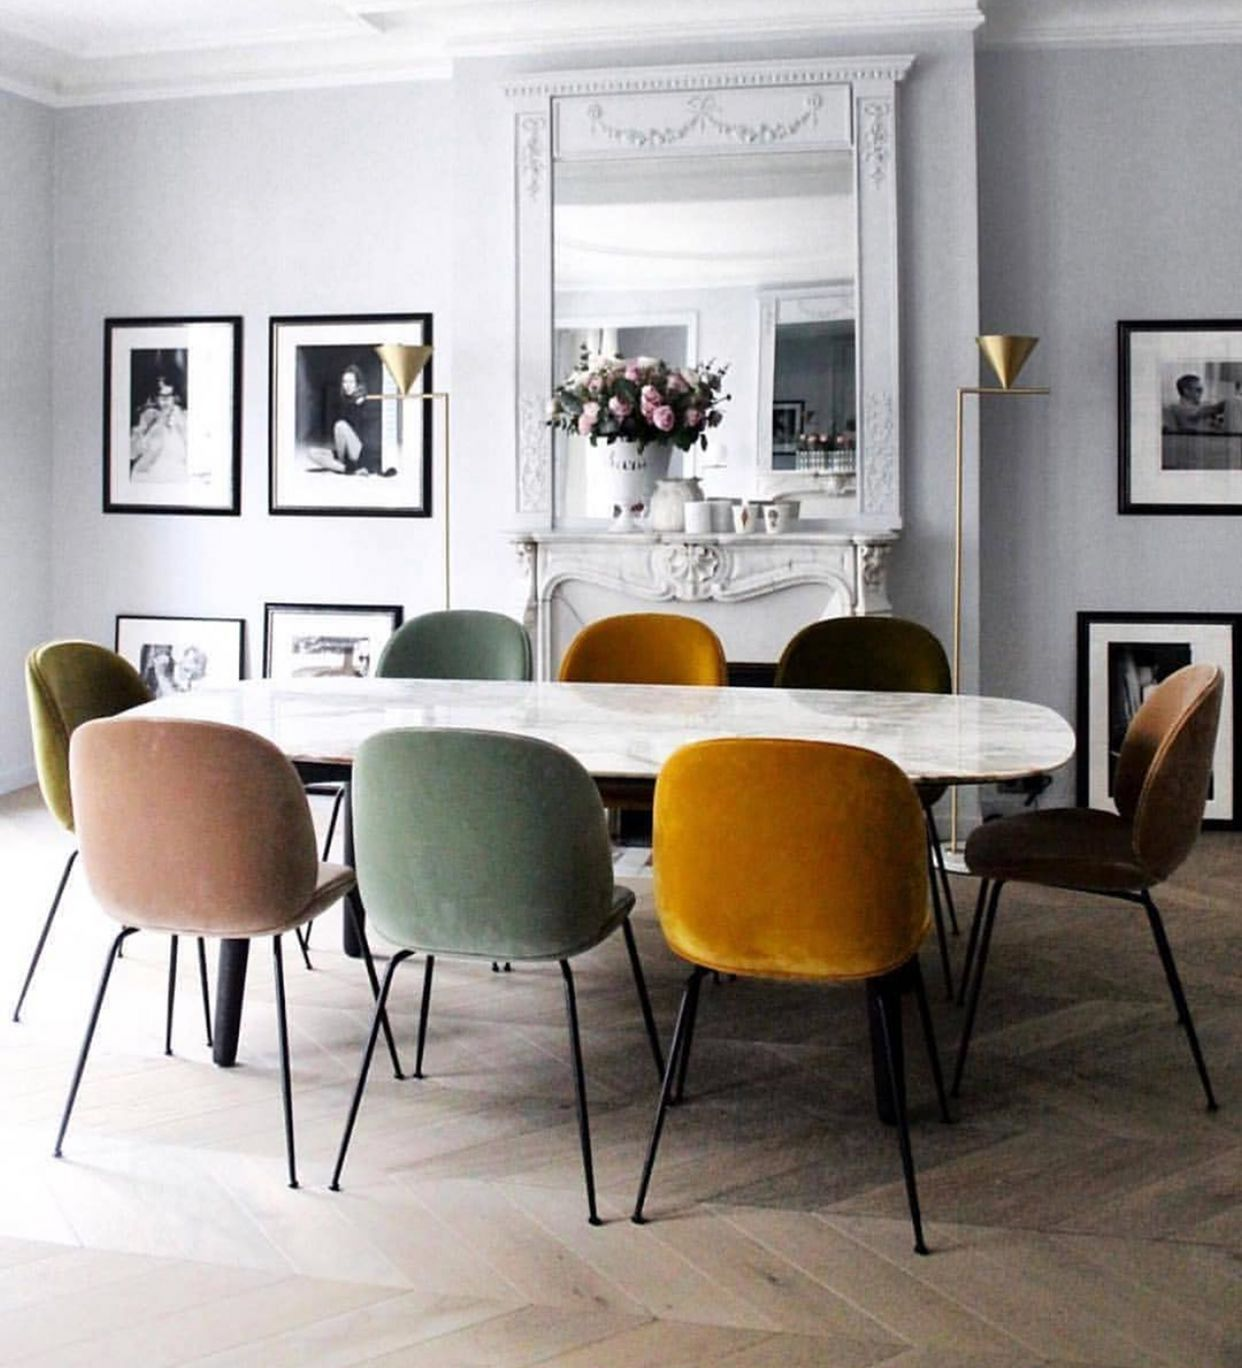 Phenomenal create  gorgeous room with cool color interior design ideas that you never also off to the races dining rooms pinterest rh